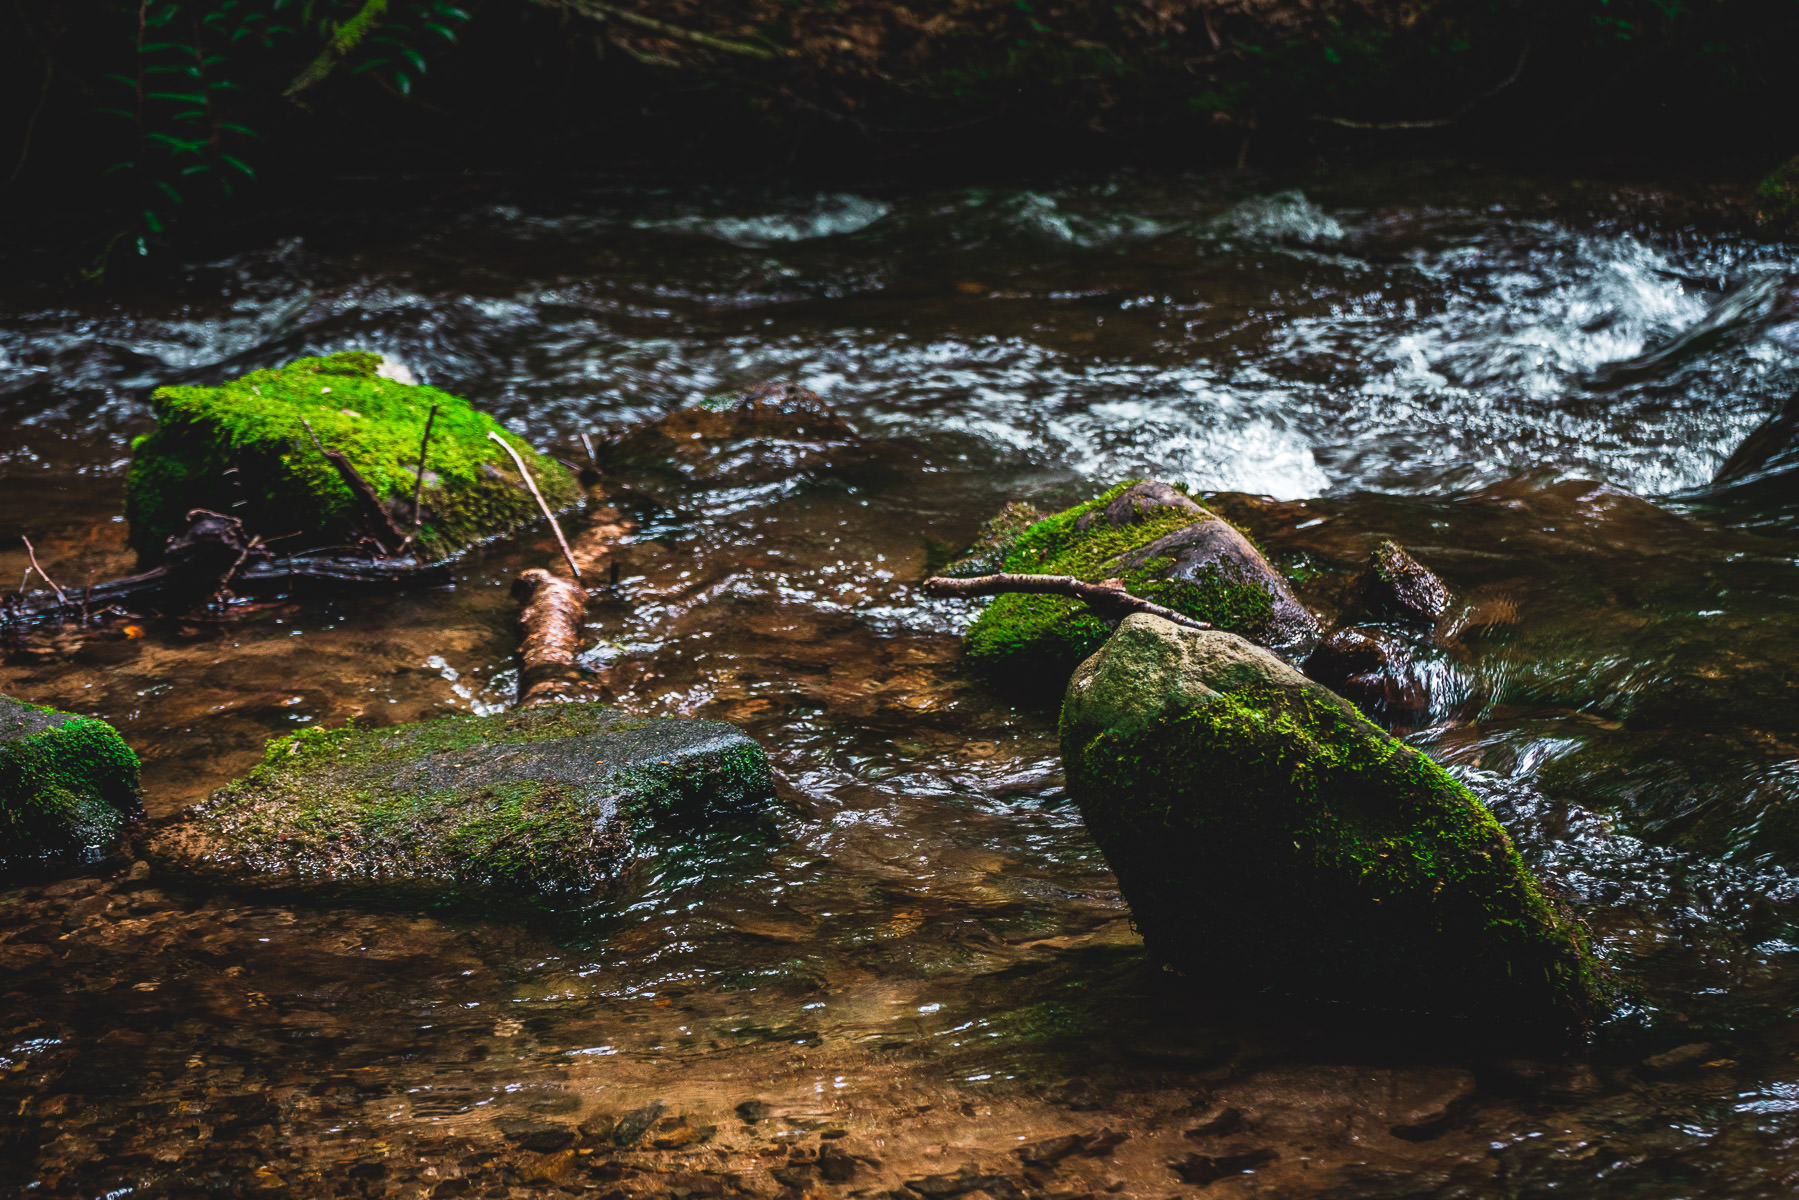 Moss-covered rocks in a stream at the Great Smoky Mountains National Park, Tennessee.